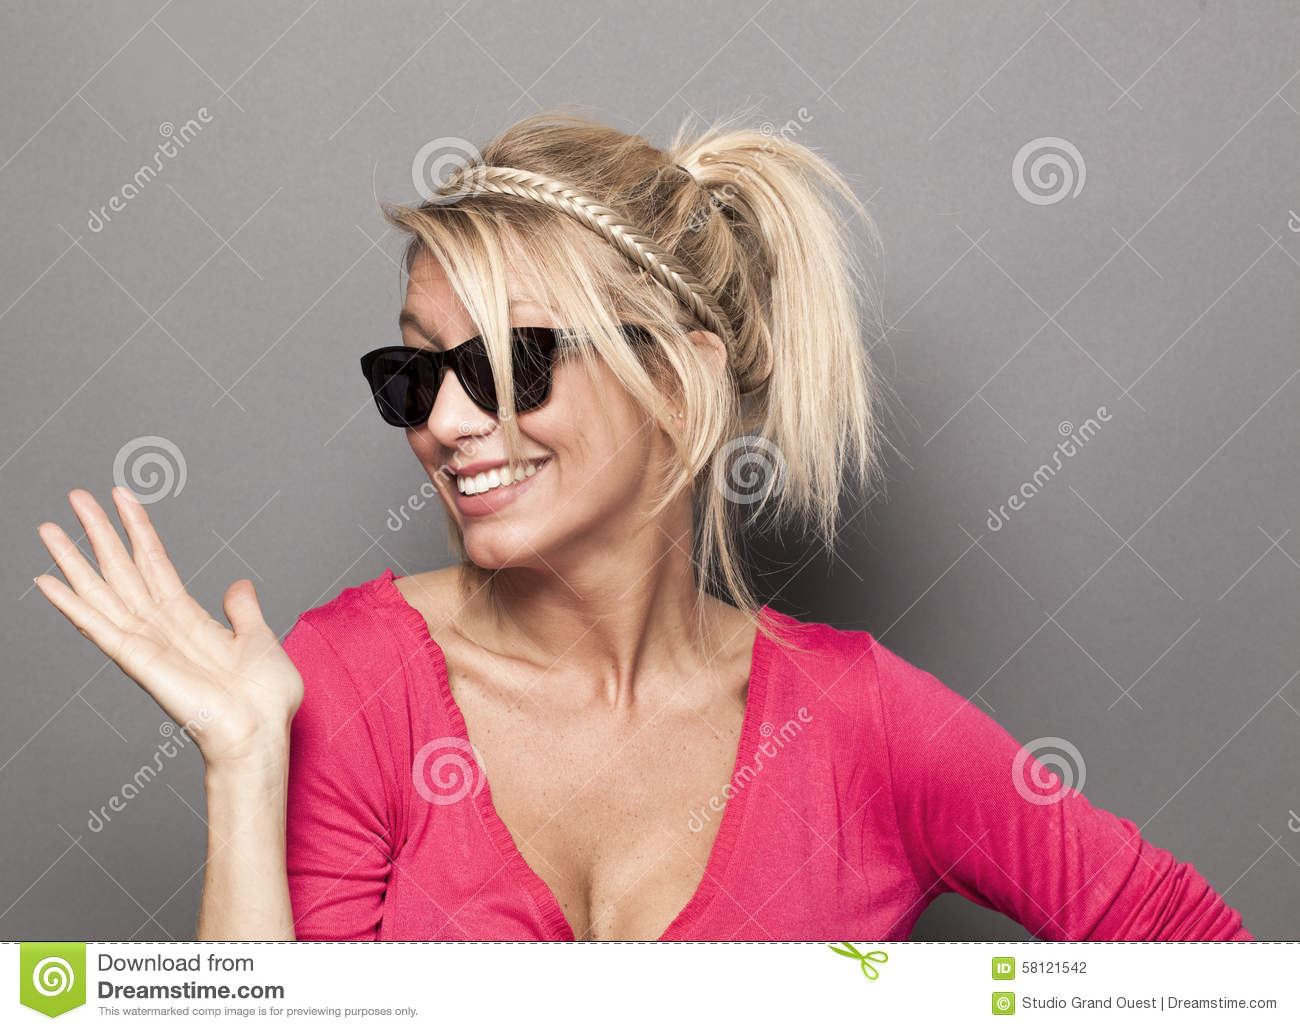 ce72fb3370a Summer or star sunglasses concept - sophisticated young blonde woman acting  like a star with smoked glasses